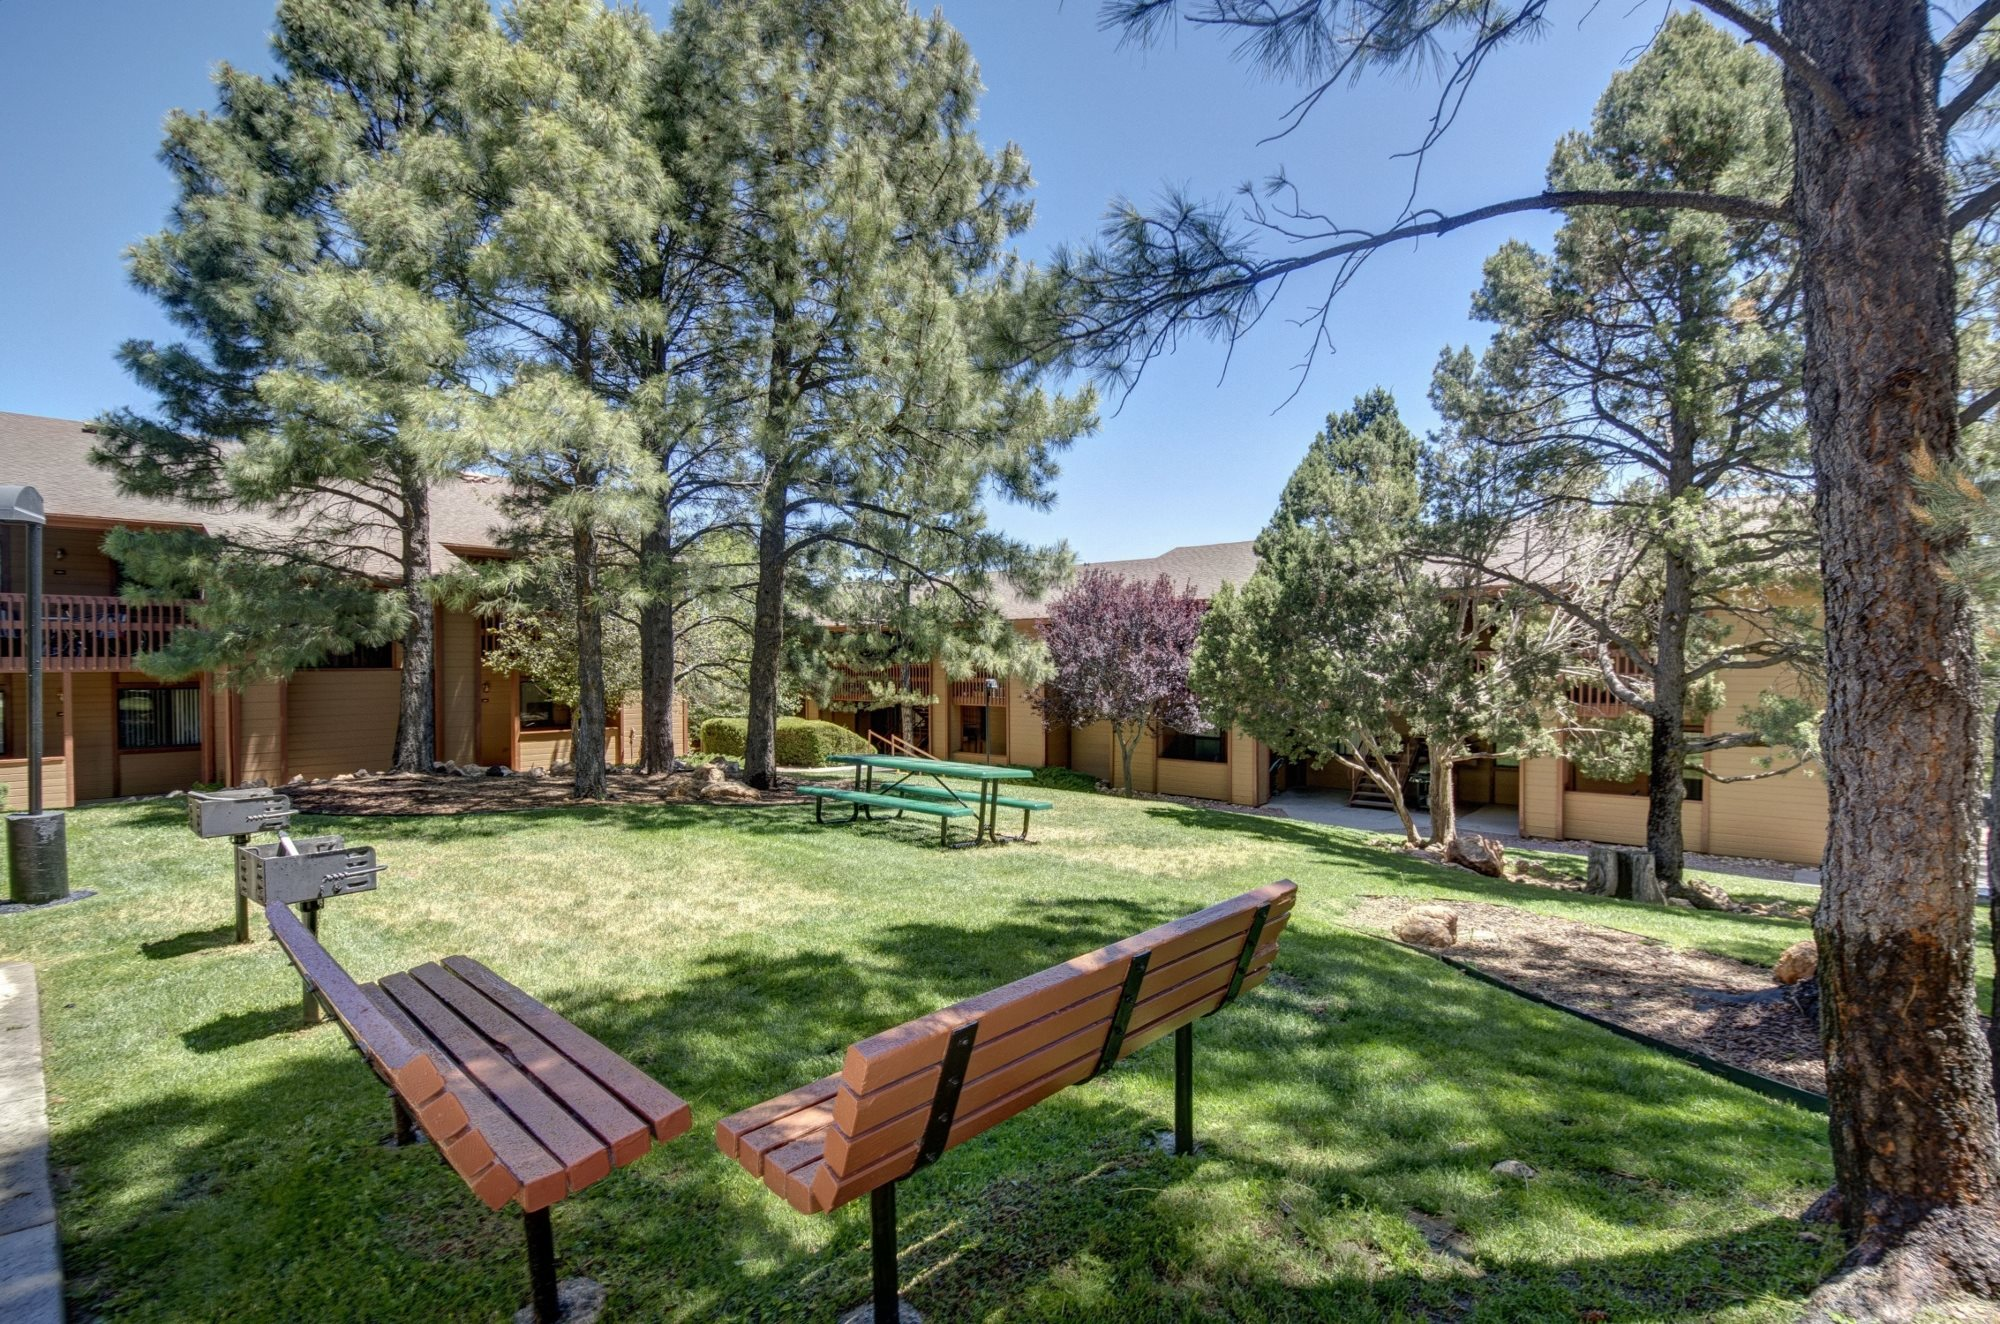 BBQ Grills, Benches, and Picnic Tables at Butterfield Apartments in Flagstaff, AZ